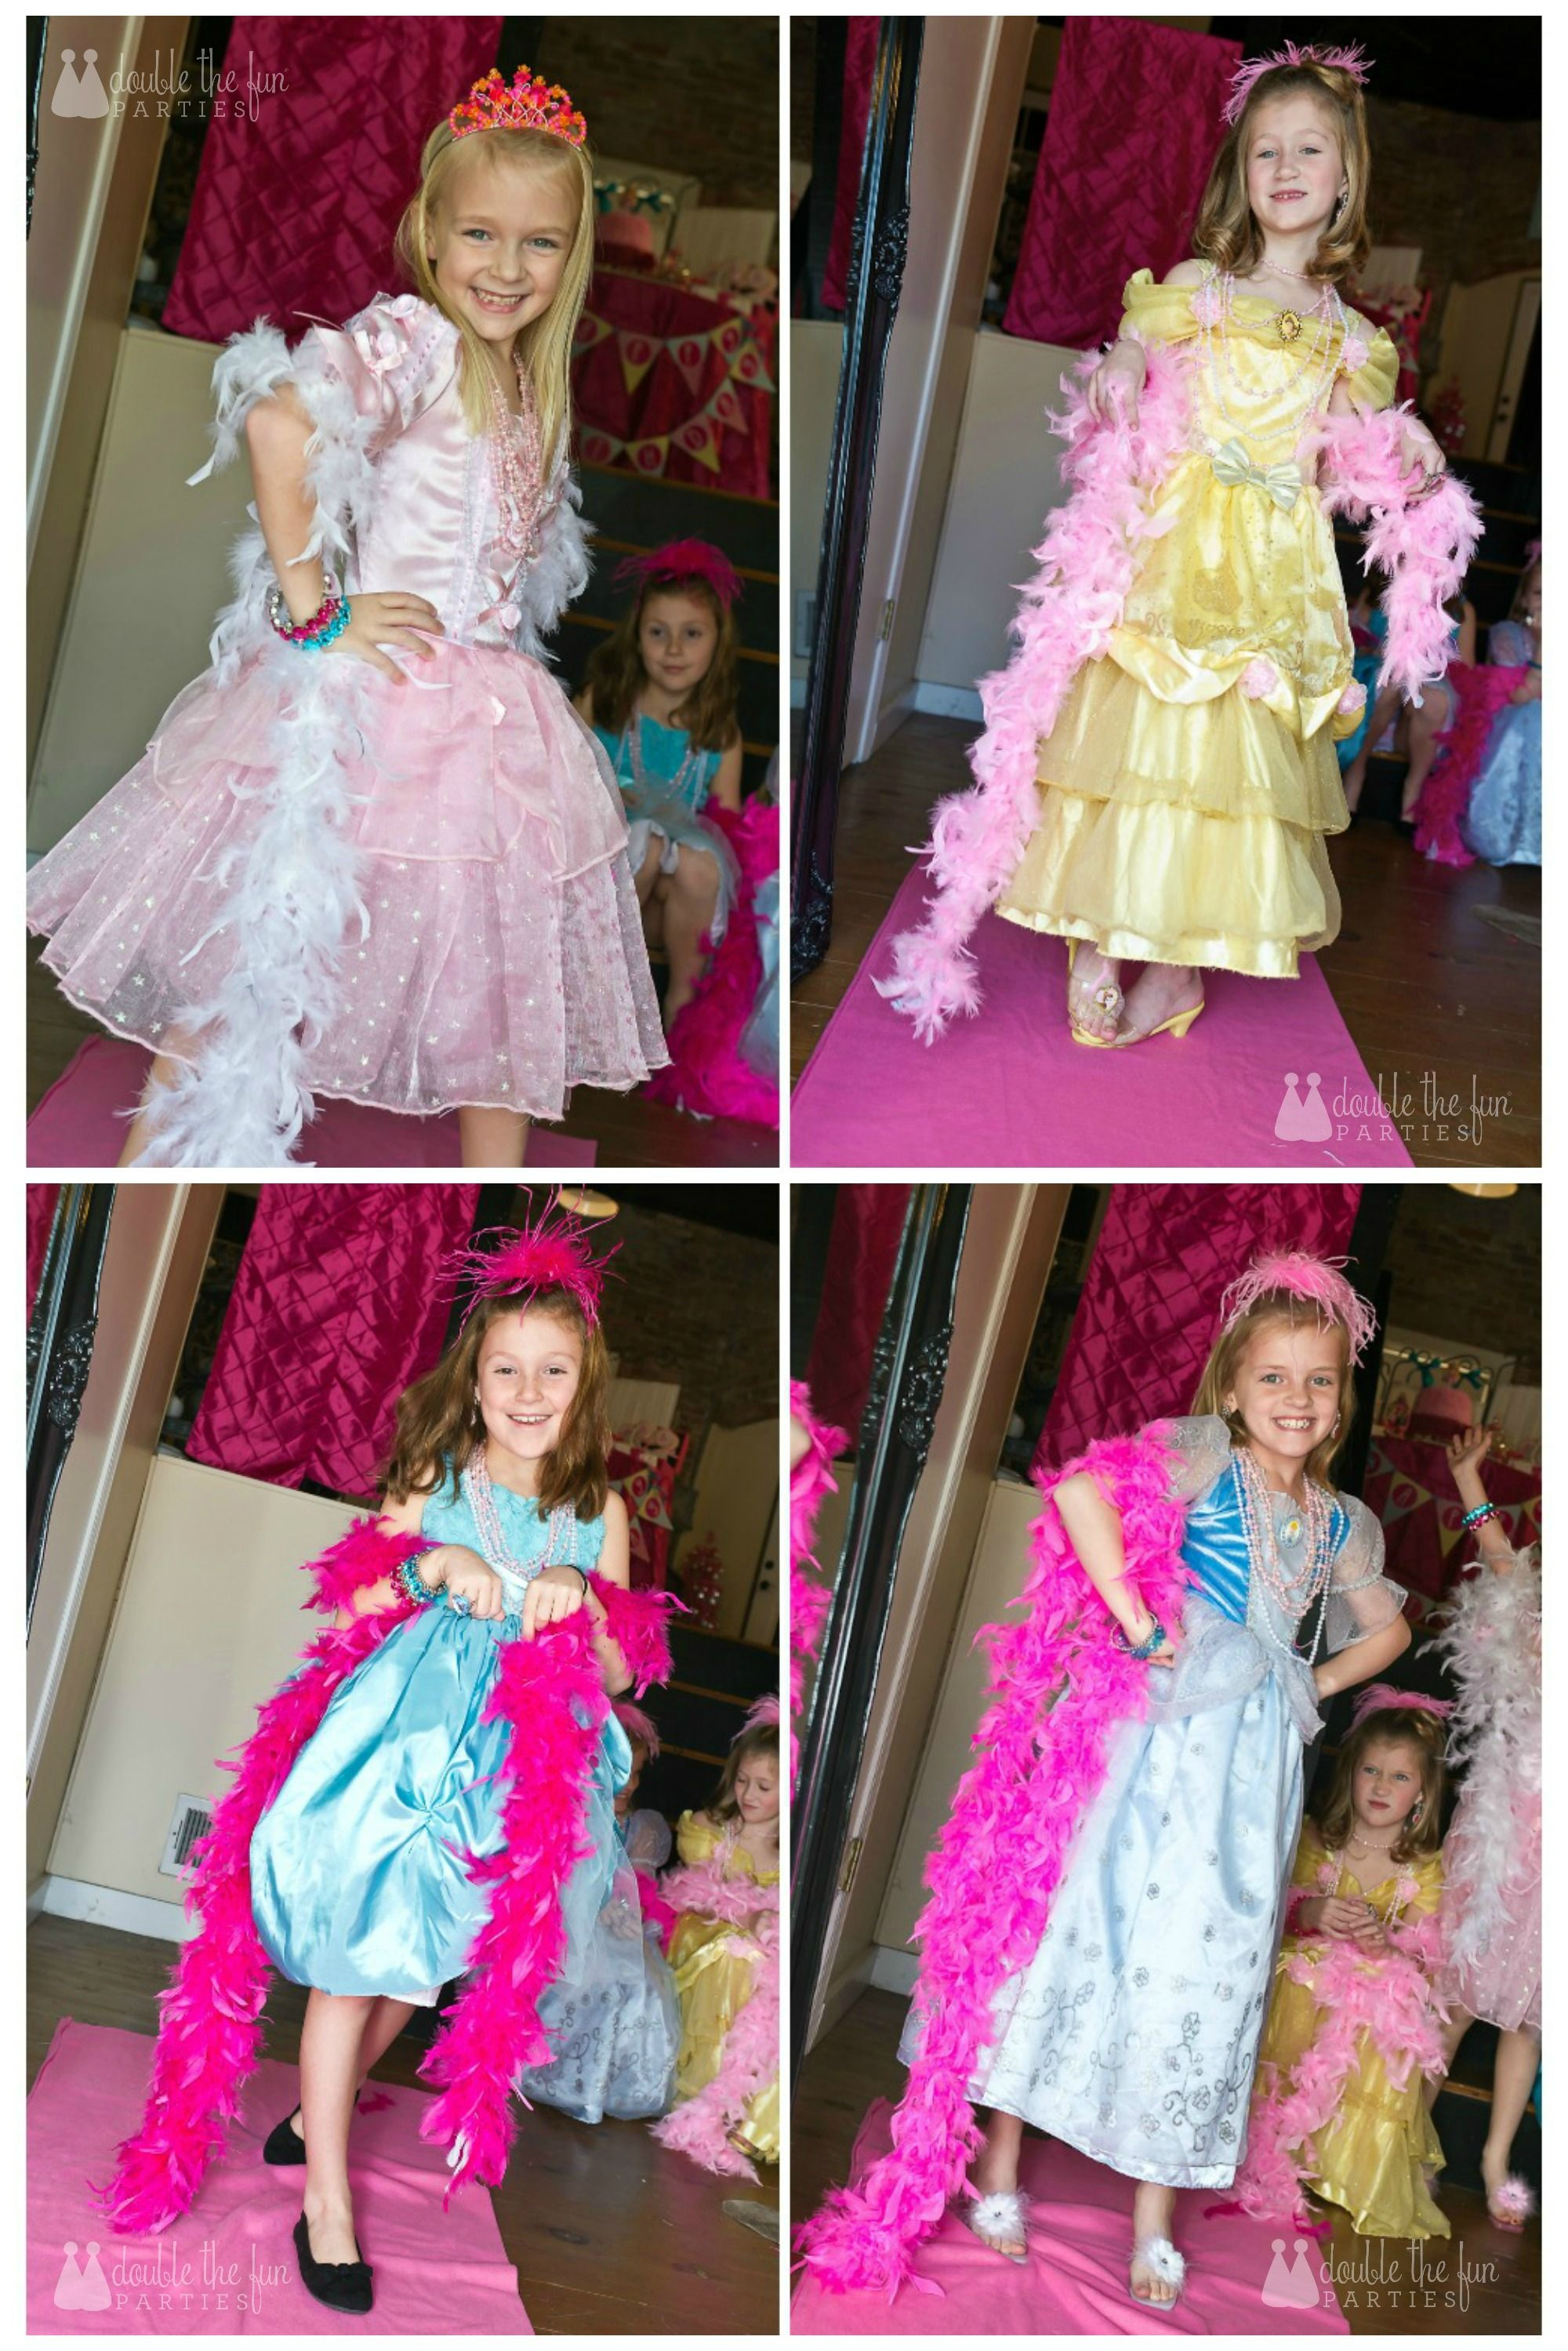 Dress Up Party for 4yearold twin girls. One wanted a